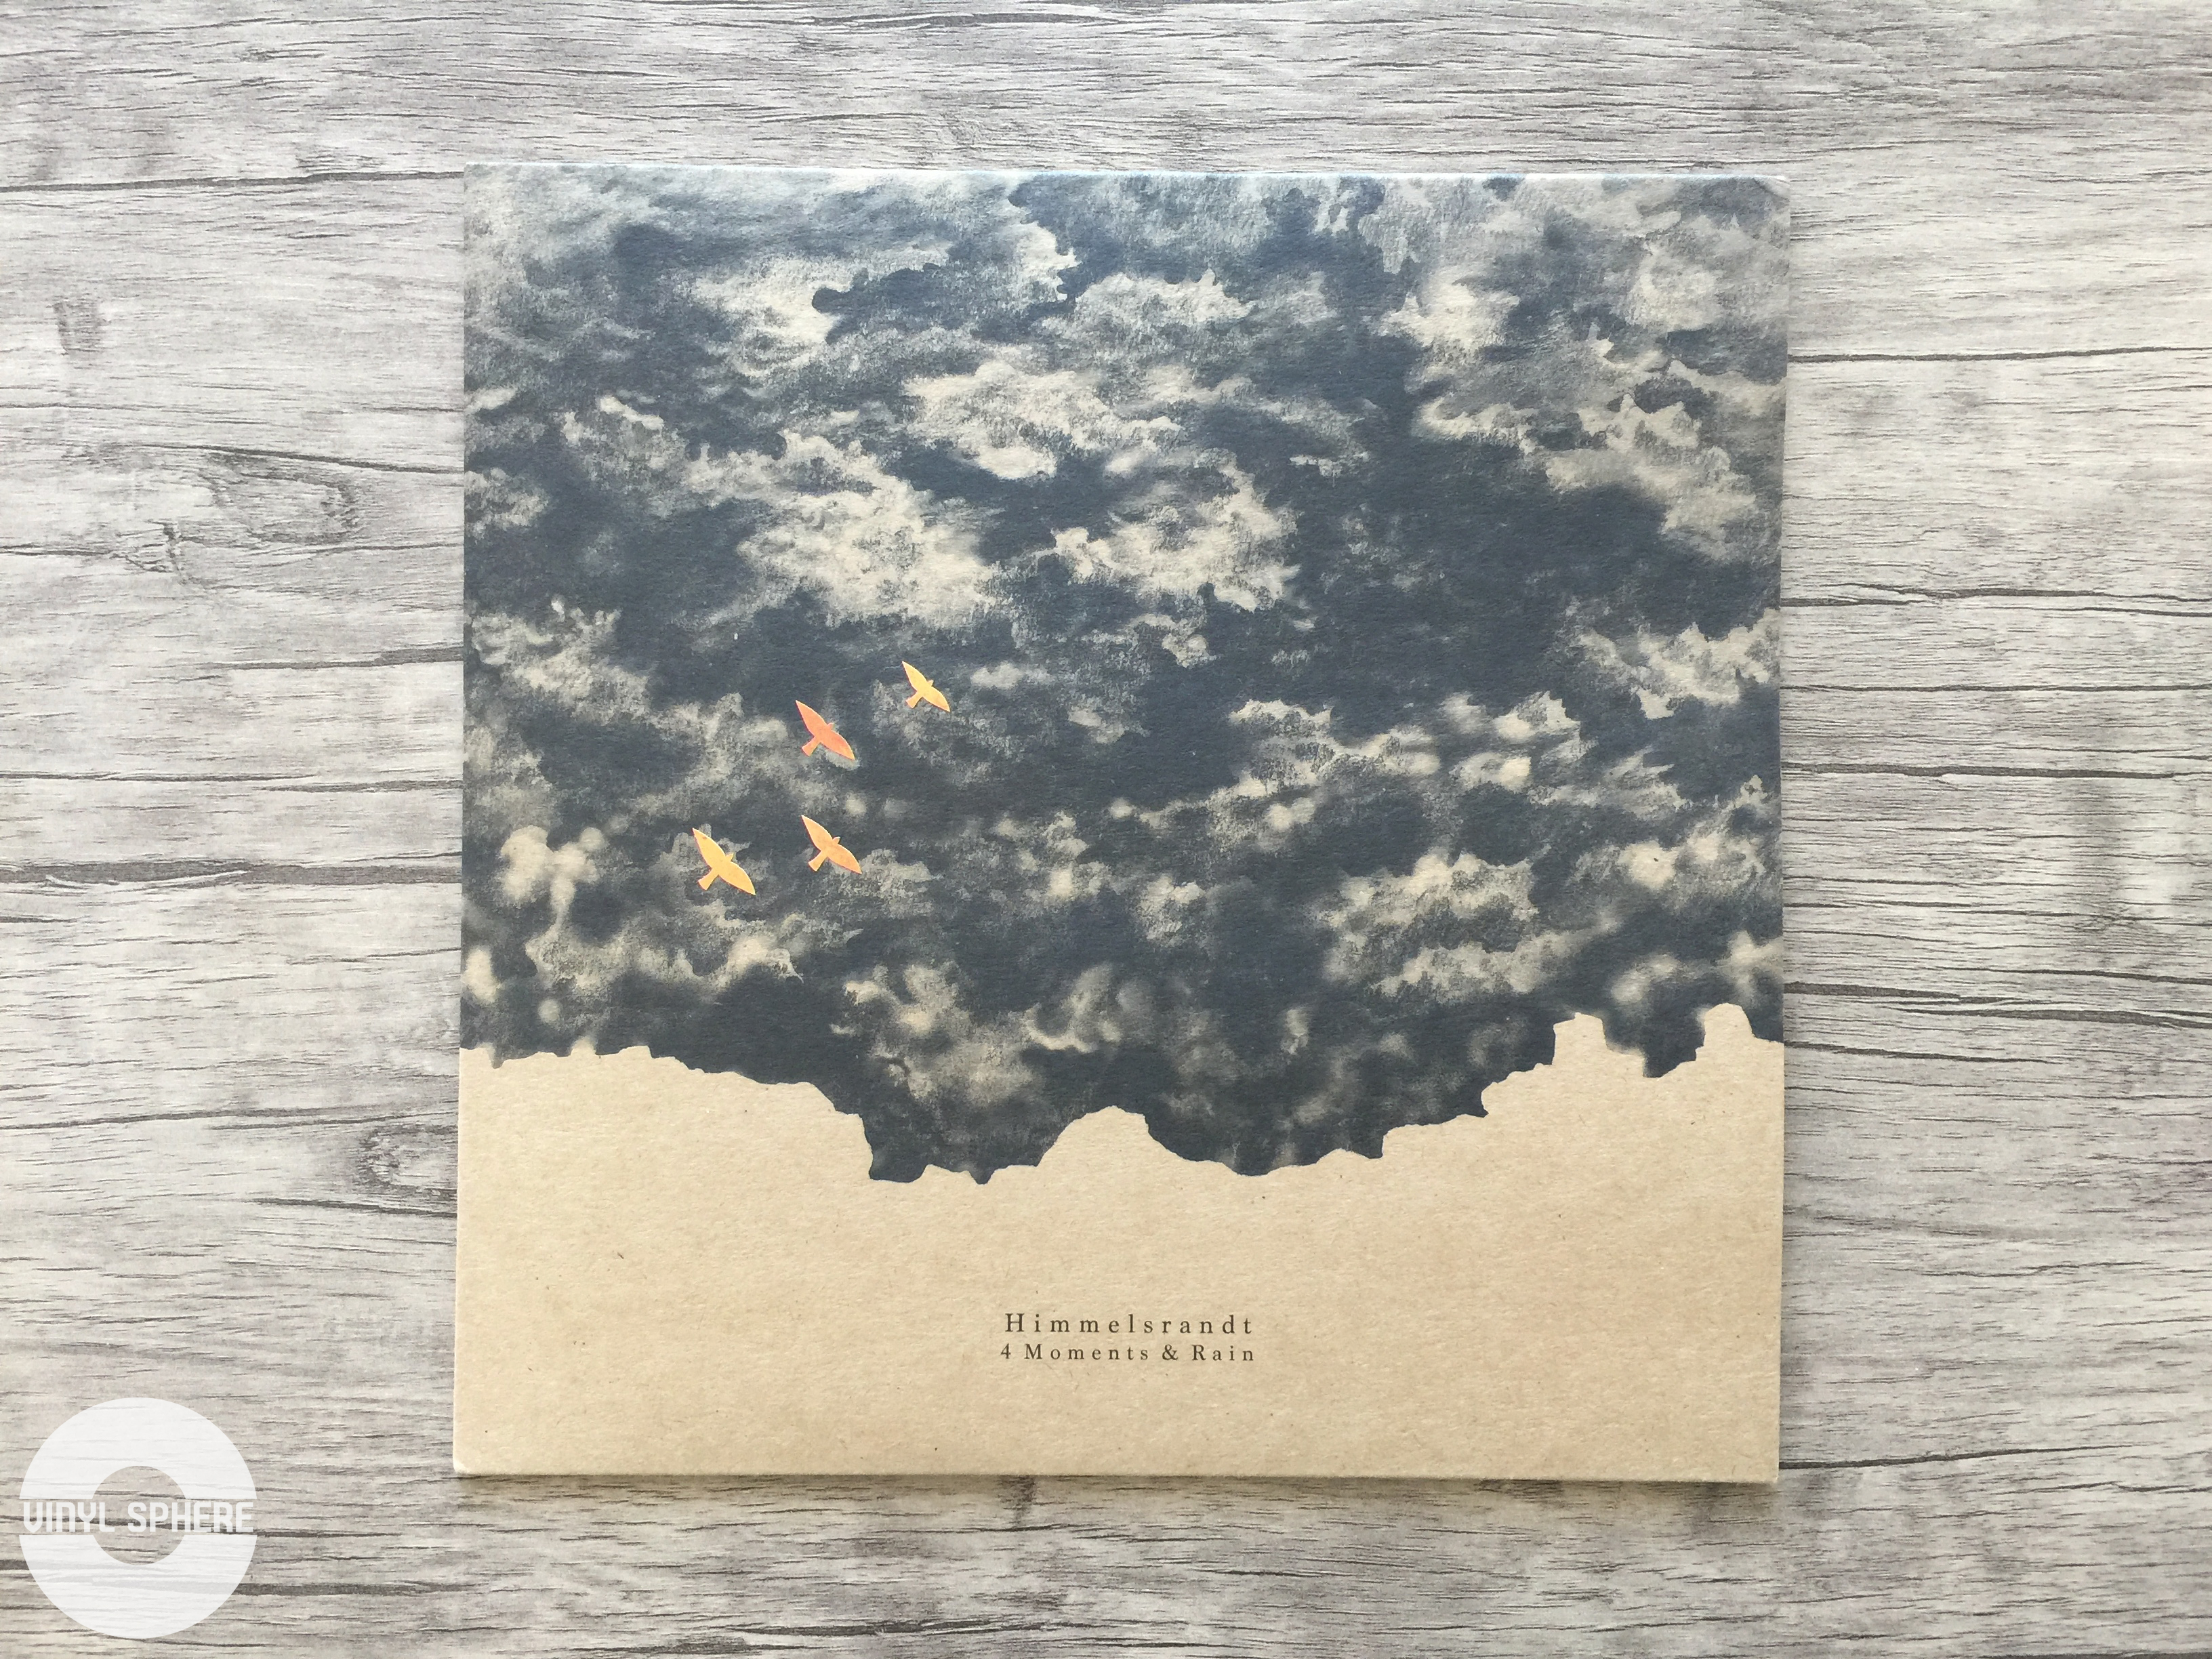 Himmelsrandt - 4 Moments & Rain (front)